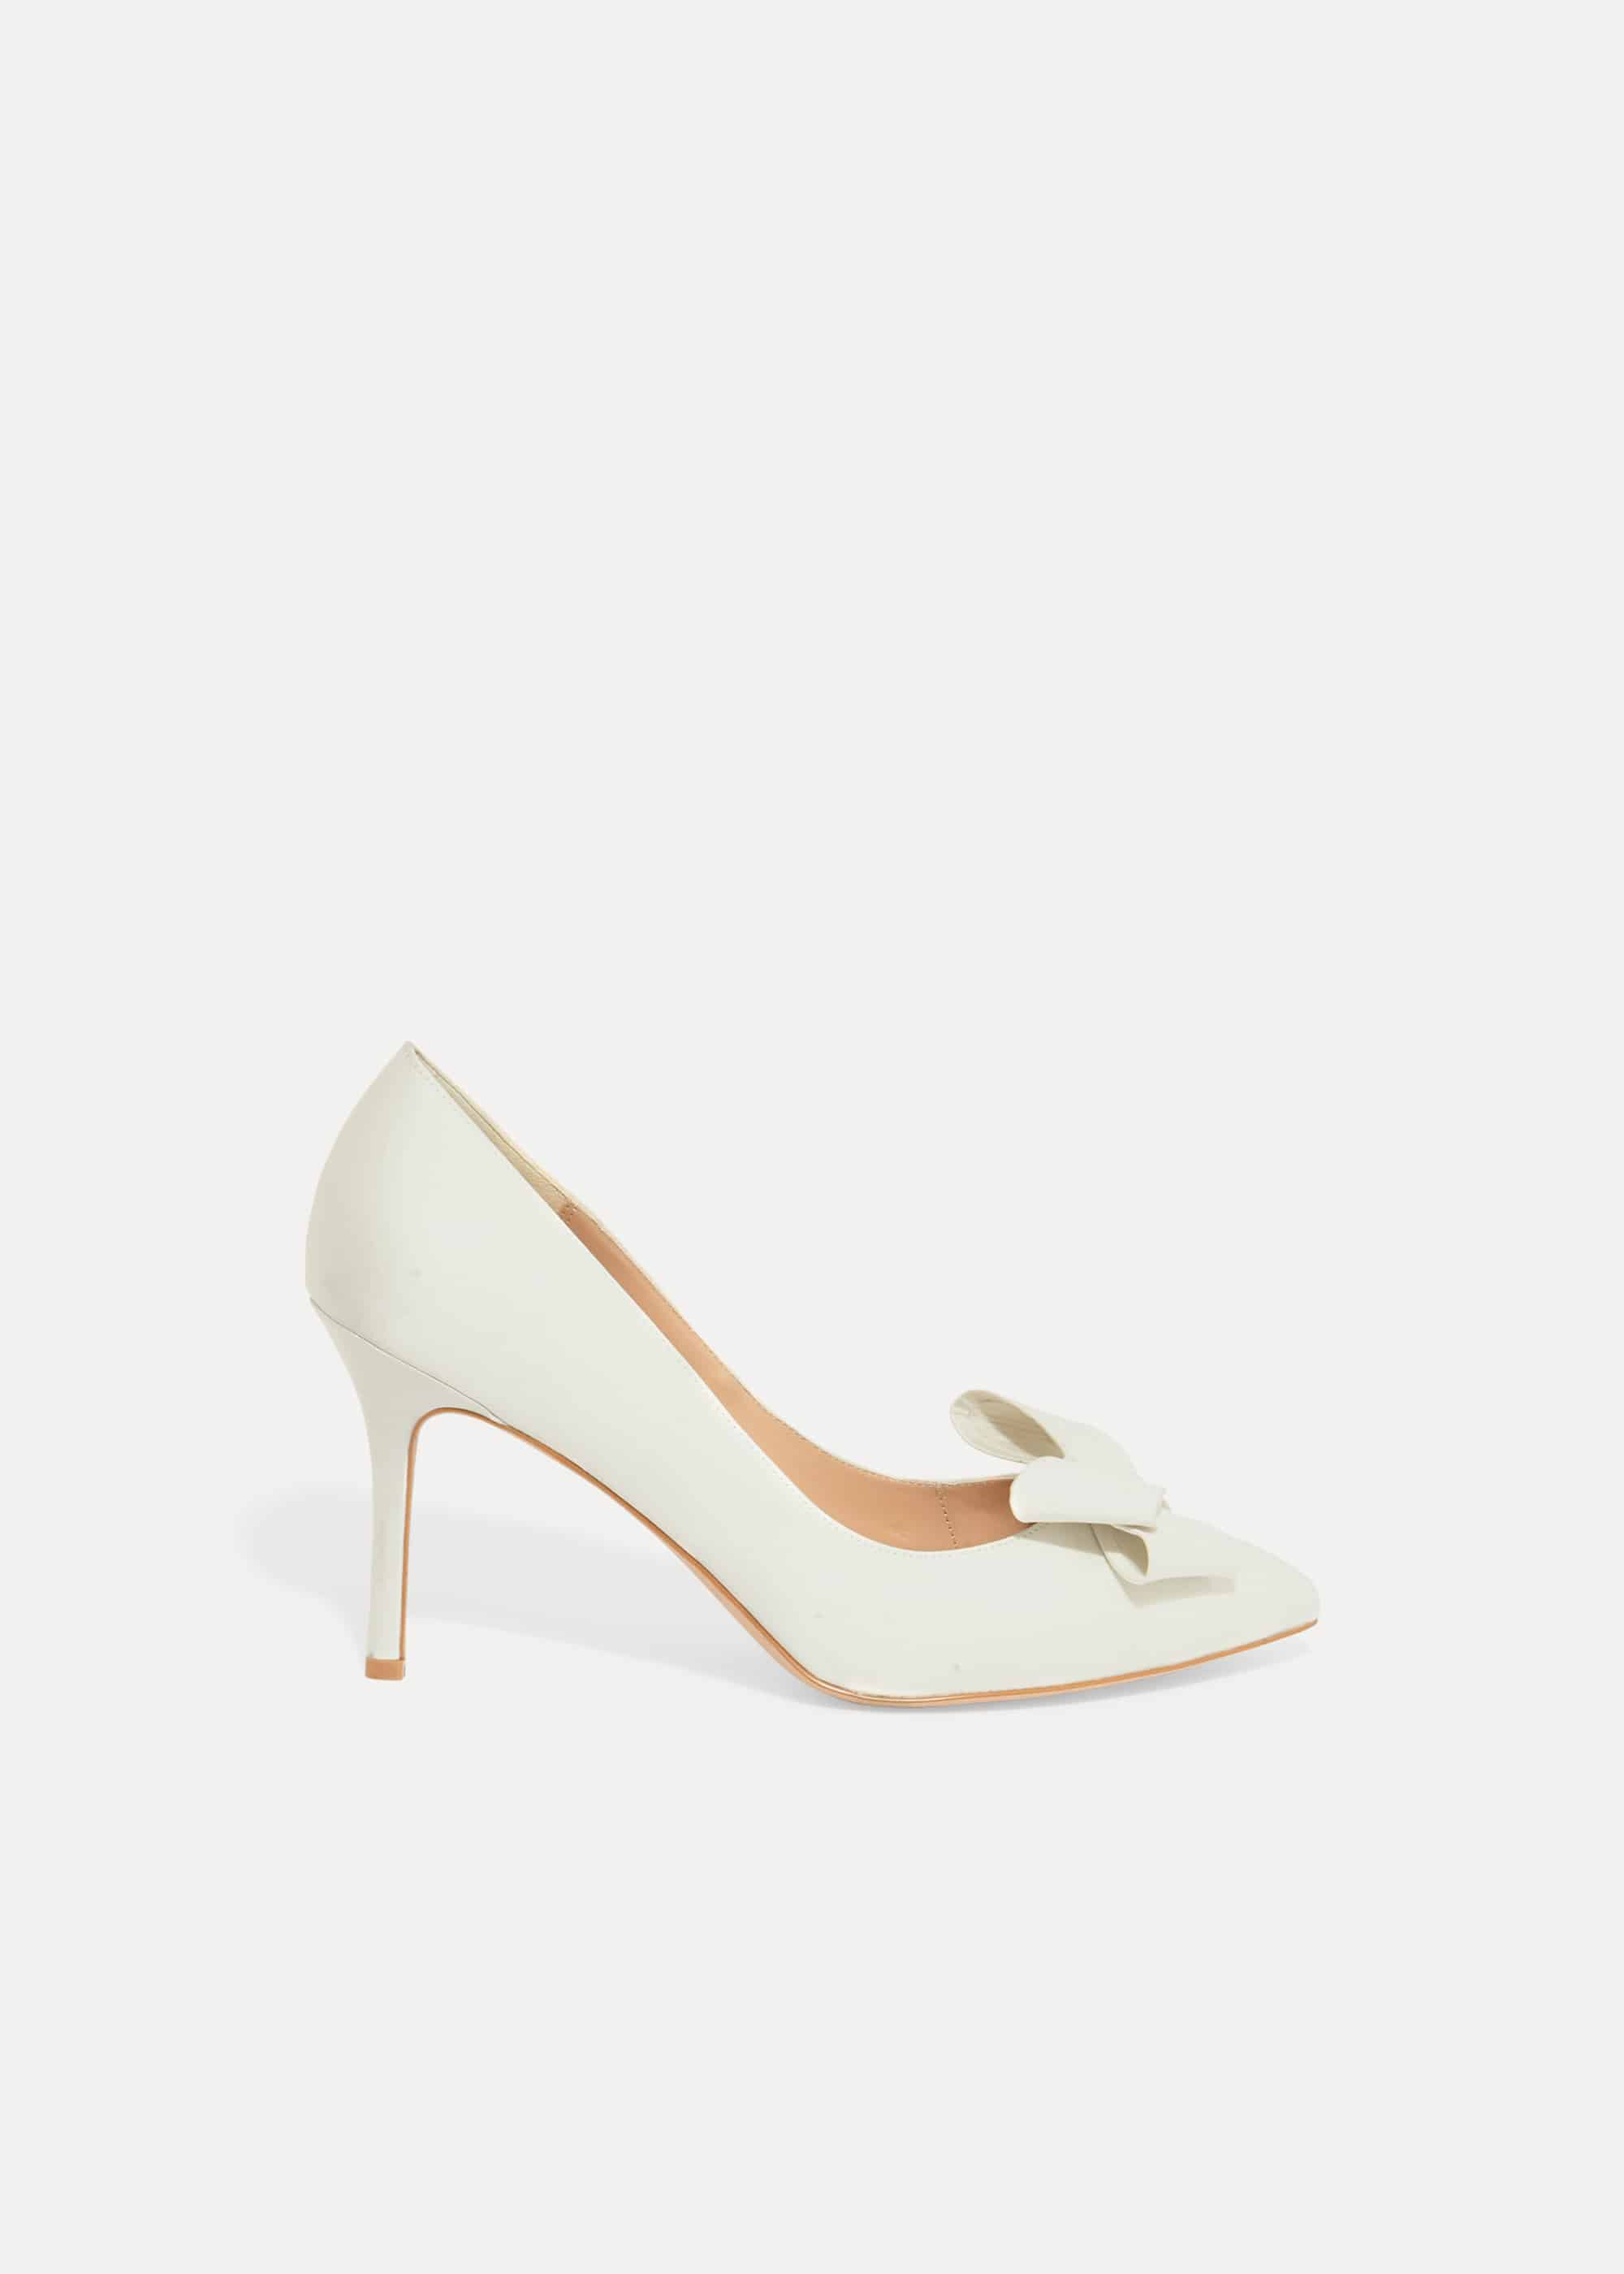 Phase Eight Kara Satin Pointed Court Shoes, Cream, High Heels